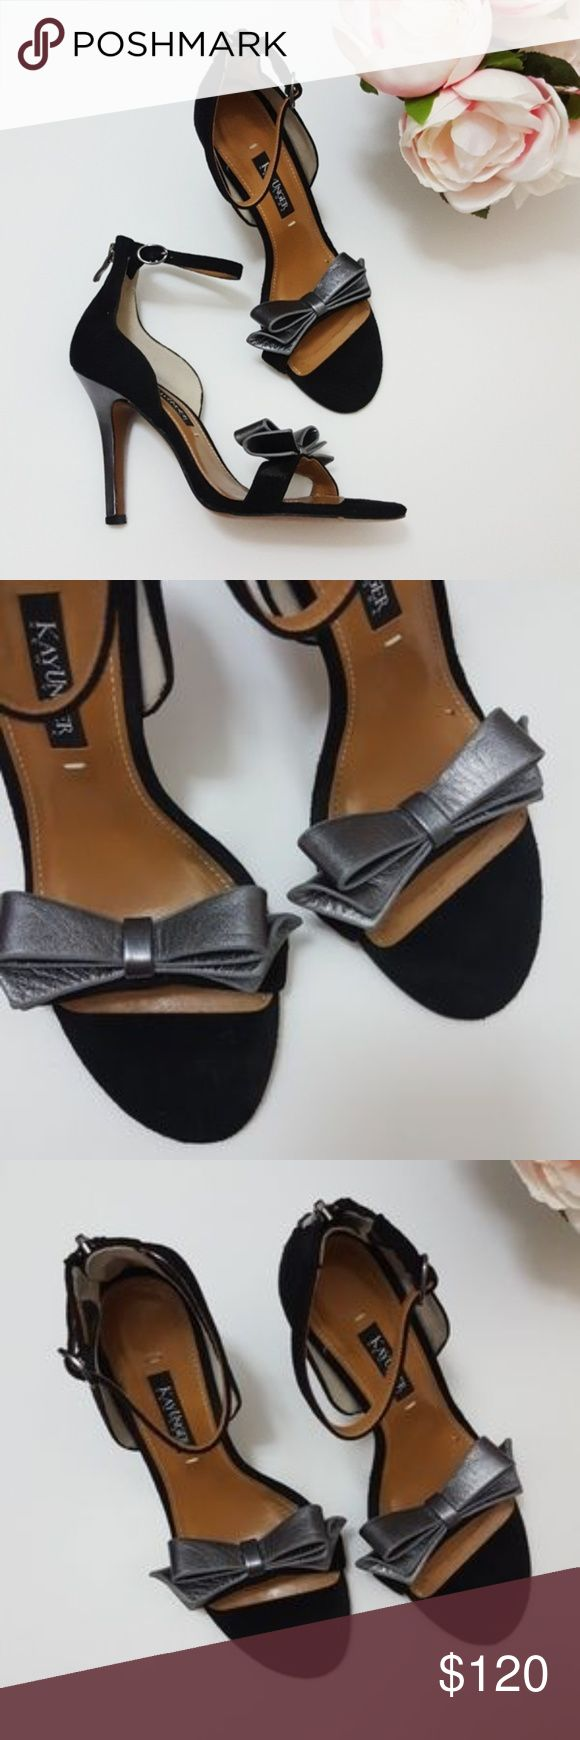 Kay Unger bow strap heels size 6.5 In good condition! Beautiful Kay Unger heels, size 6.5. 4 imch heel. Black suede material, size 6.5. Gray metallic color bow. See left heel for slight imperfection. Used item: lovingly inspected for wear. Pictures show any signs of wear. Bundle up! Offers always welcome:)  Shop my husban'd closet! @kirchingeraaron Kay Unger Shoes Heels